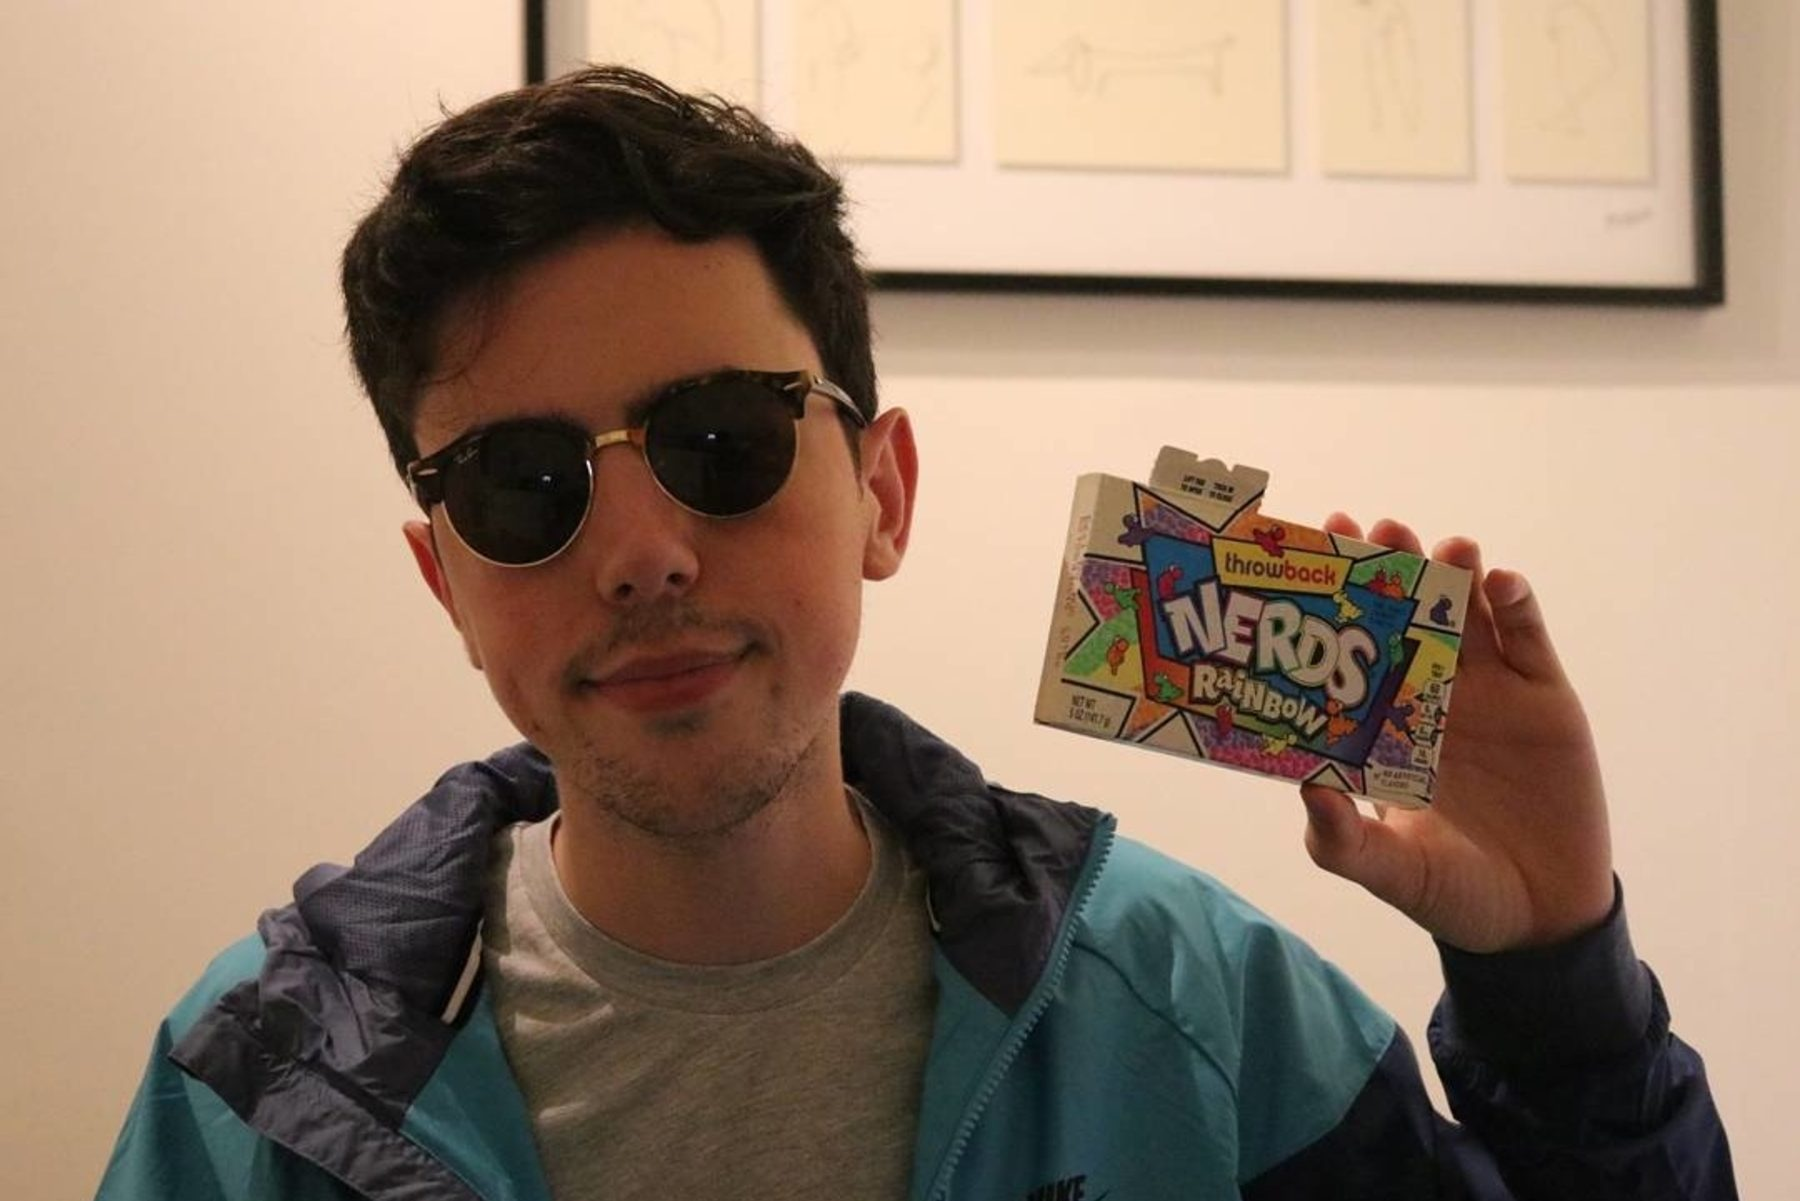 Mike from Mike's Mic holding a box of nerds